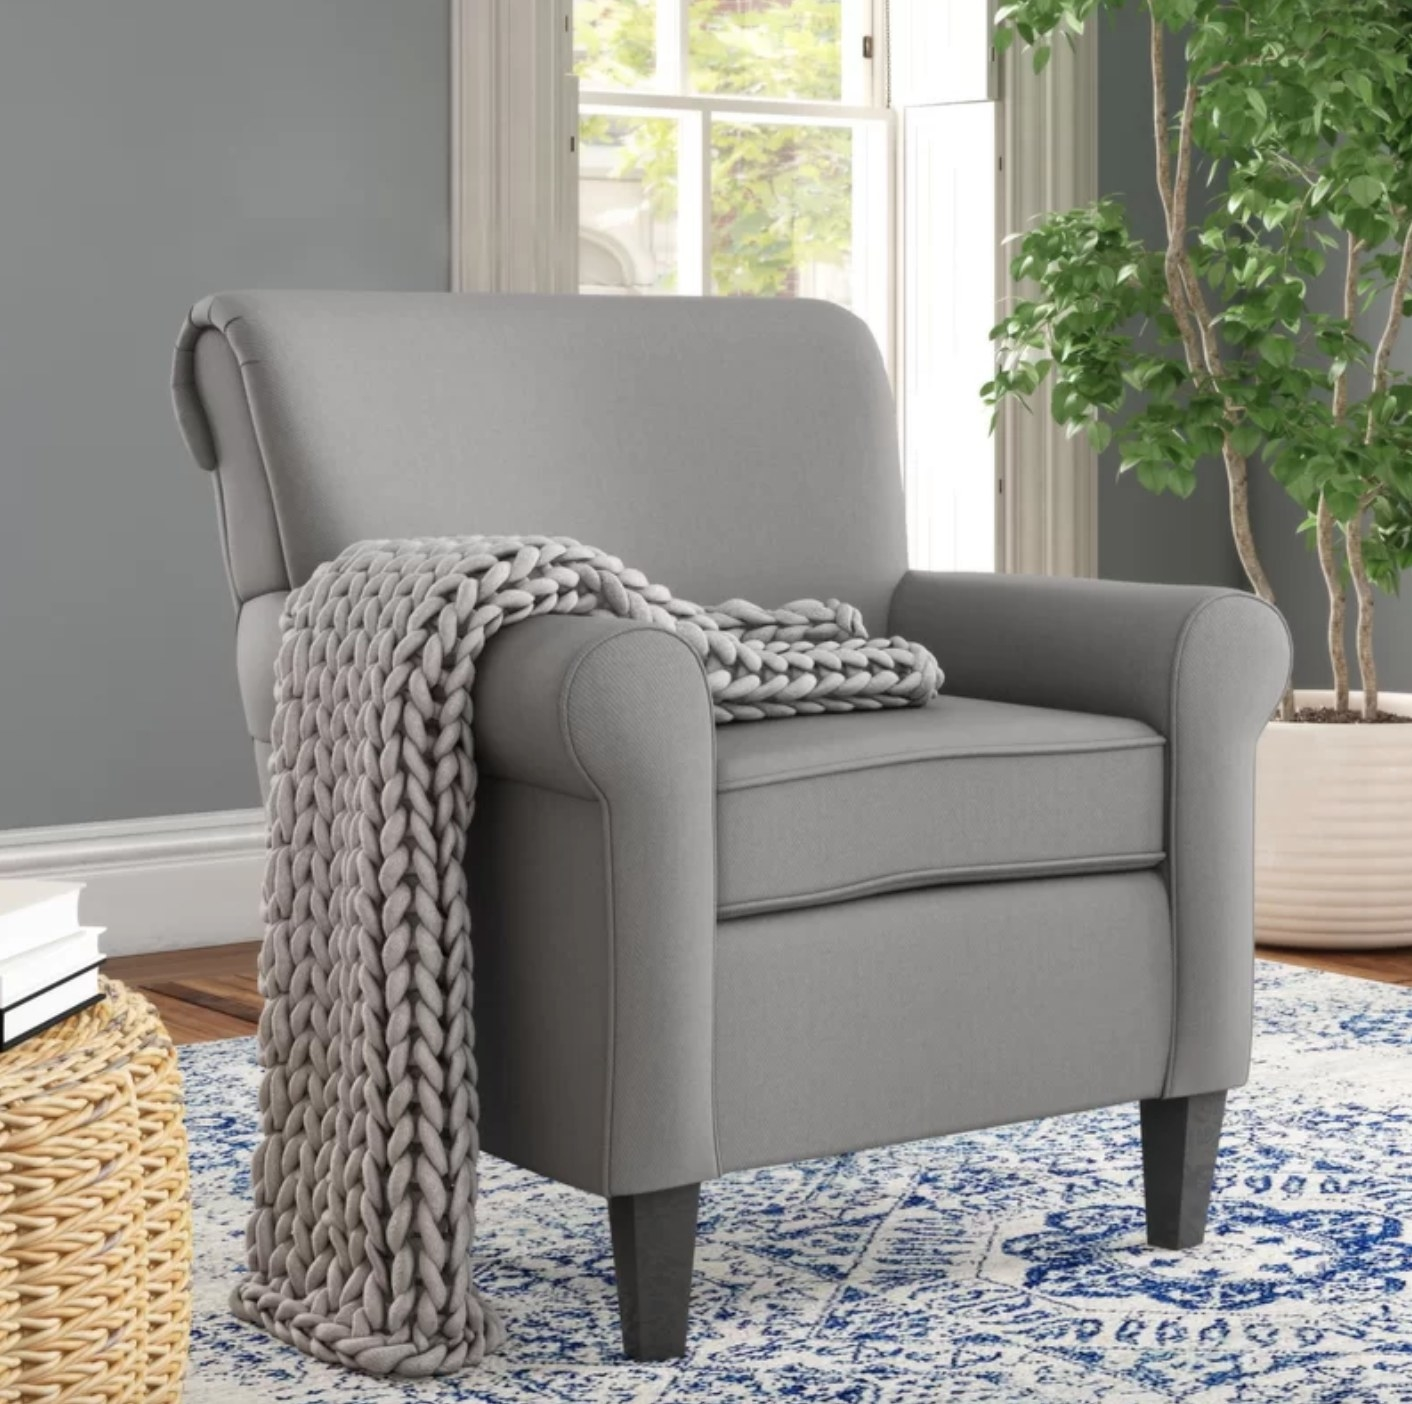 The arm chair in gray